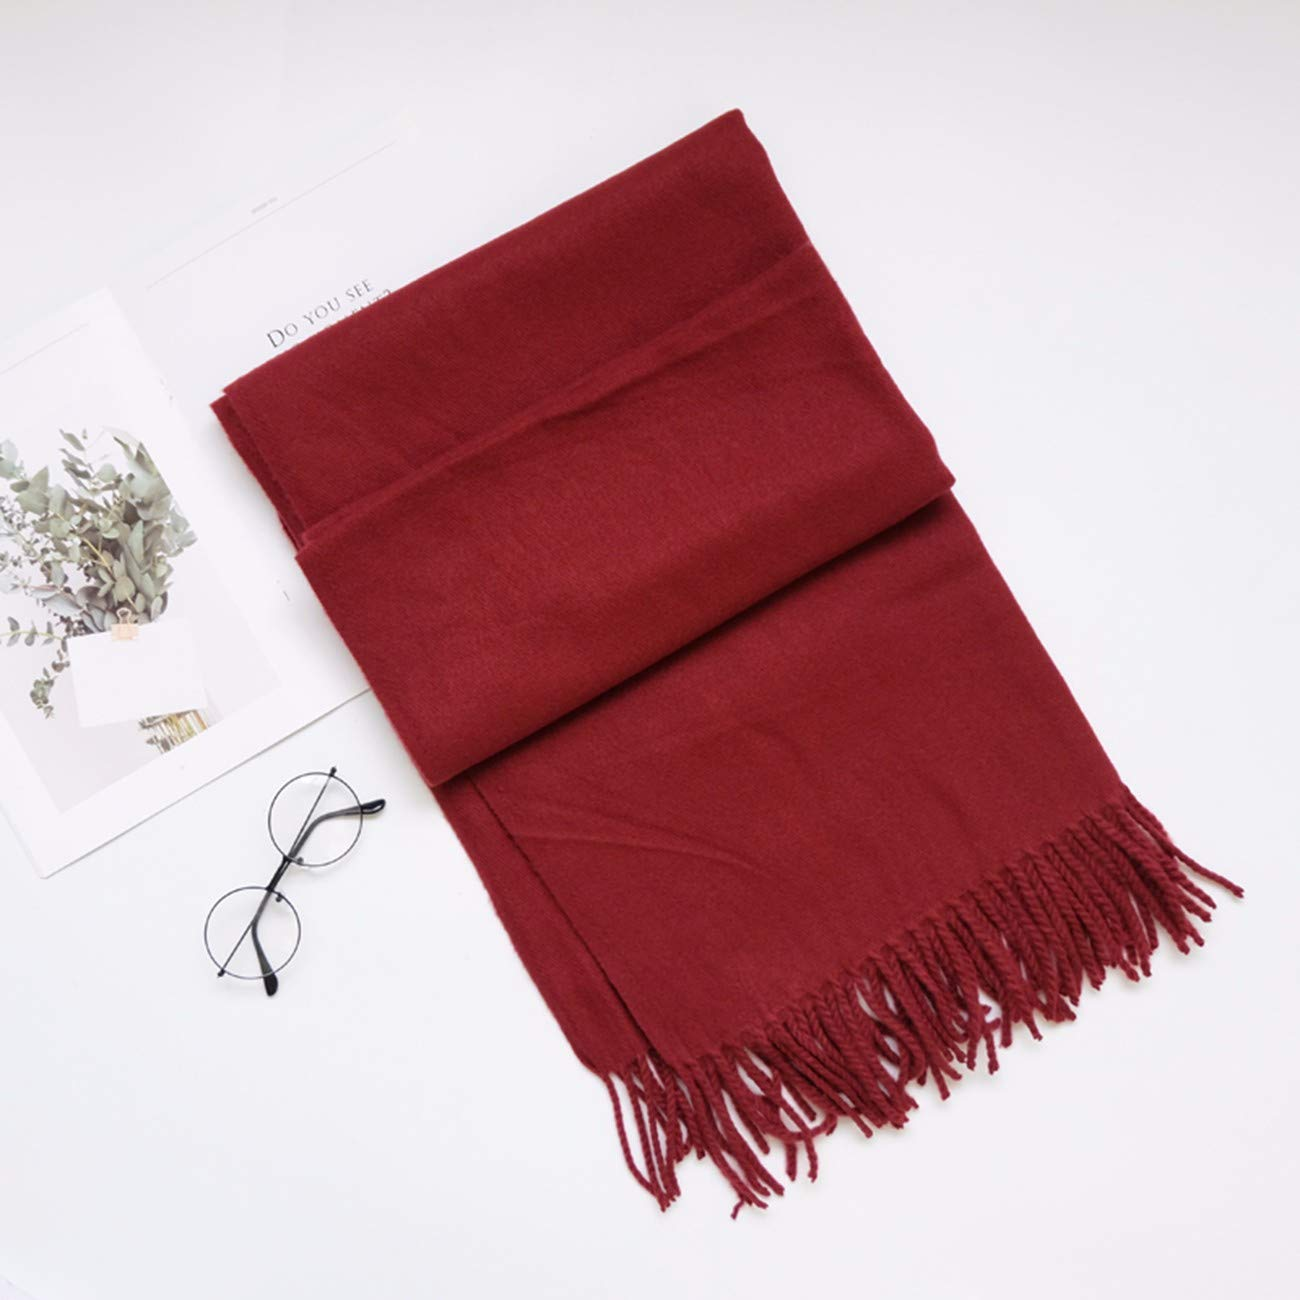 G Thickened Pure color Cashmere Scarf, DualPurpose Shawl and Long Neck Scarf.